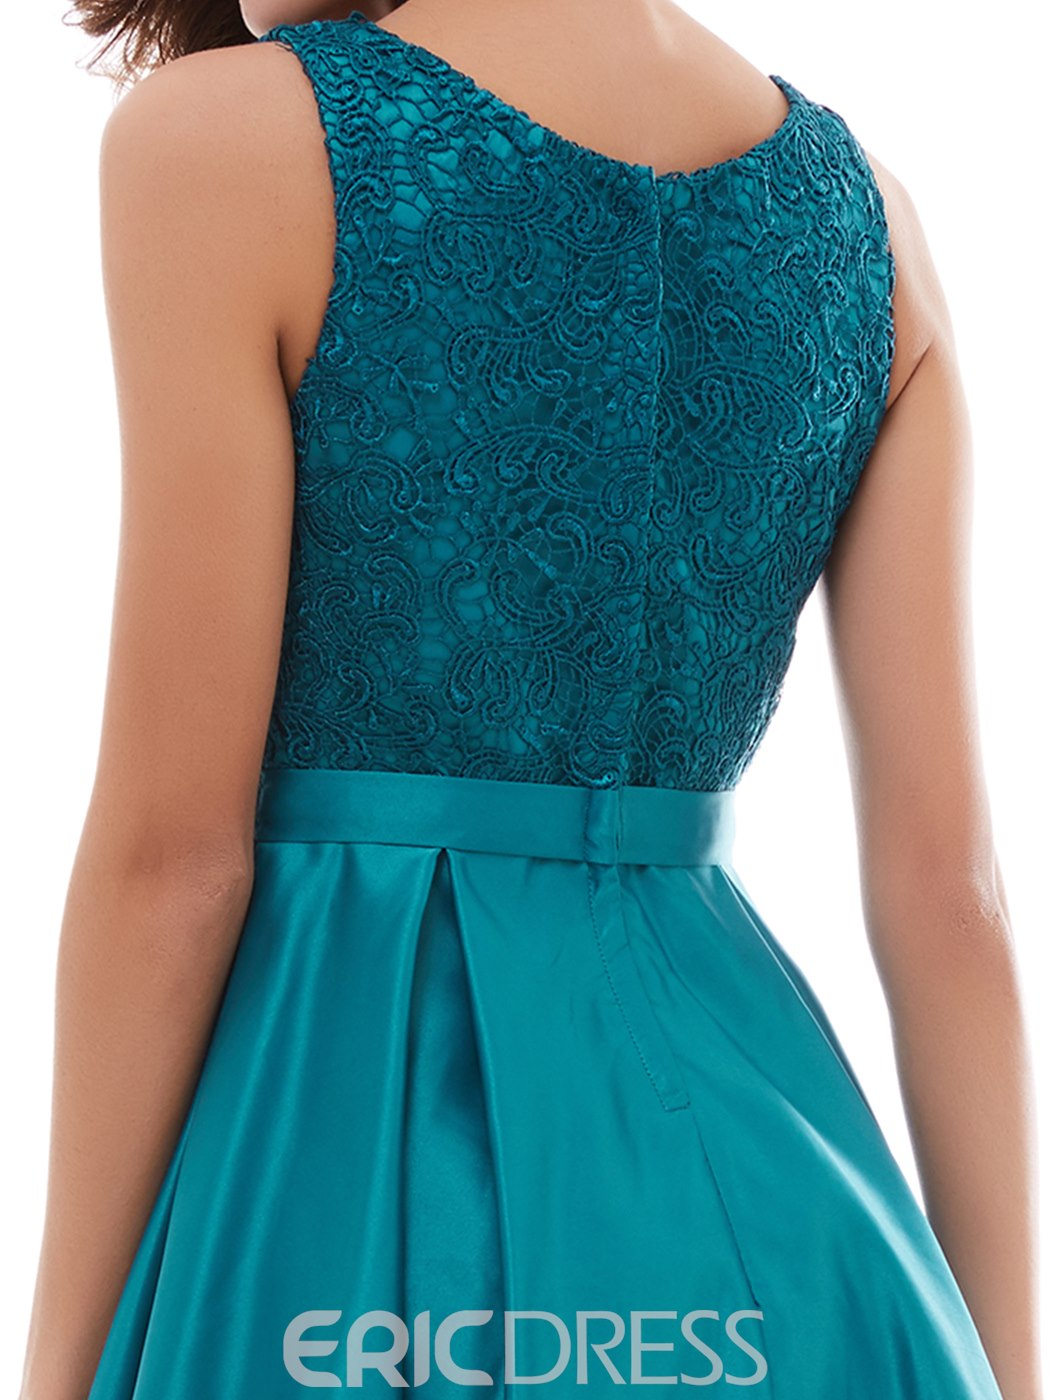 Ericdress Short A-Line Lace Zipper Back Knee-Length Short Party Dress